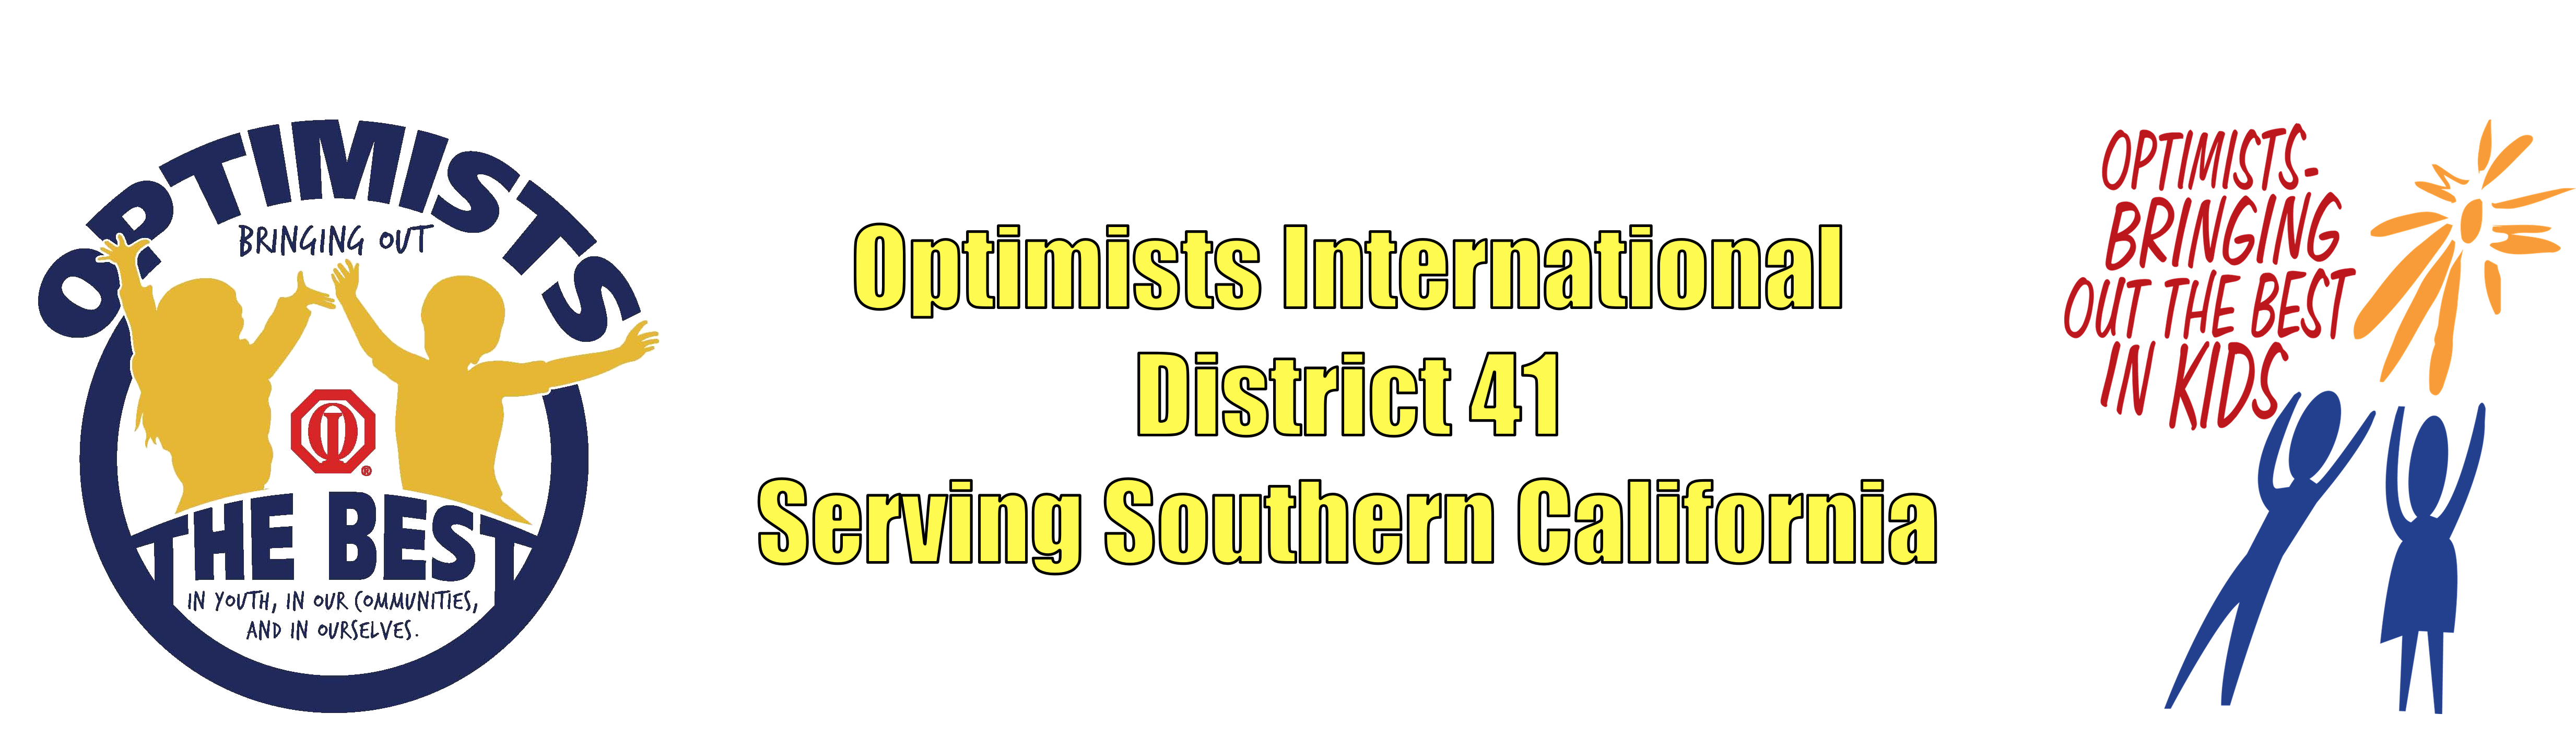 optimists international essay contest Official 2017 topic chasing optimism in the face of challenges due date february 22, 2017 the hill country optimist club is encouraging area students to contemplate the phrase chasing optimism in the face of challenges as part of the optimist international essay contest for 2017.